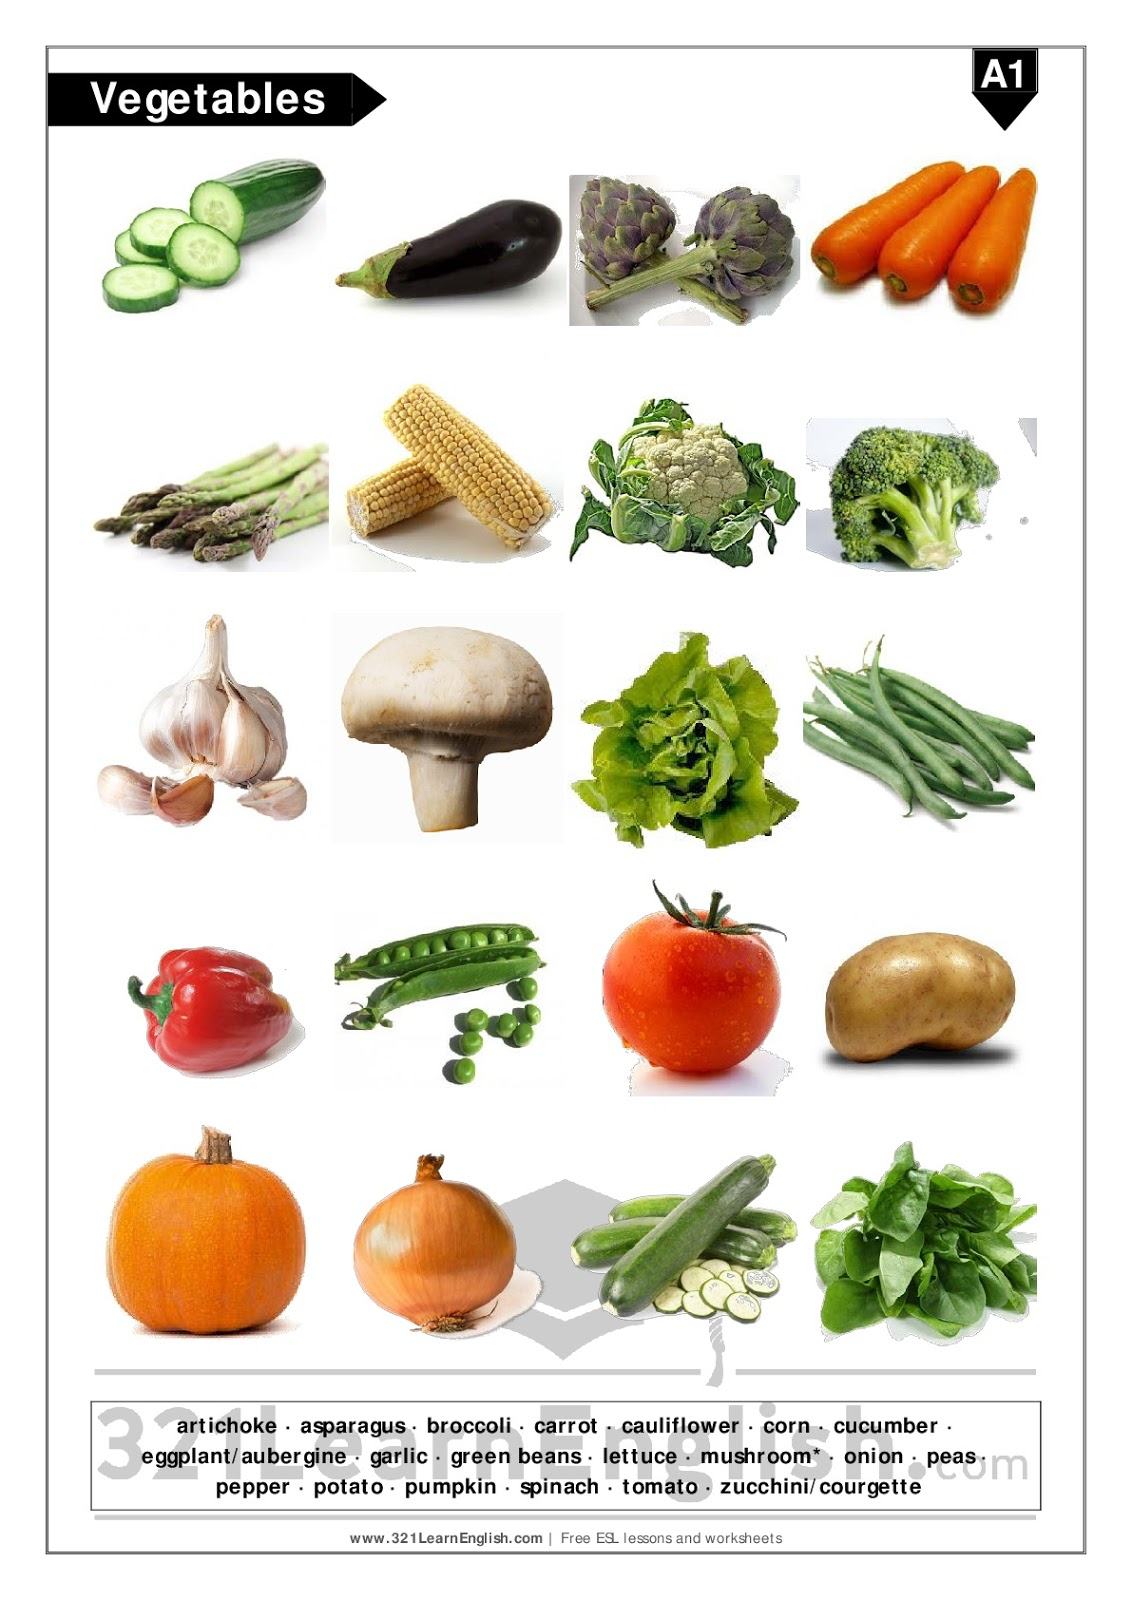 321 Learn English Vocabulary Vegetables Basic